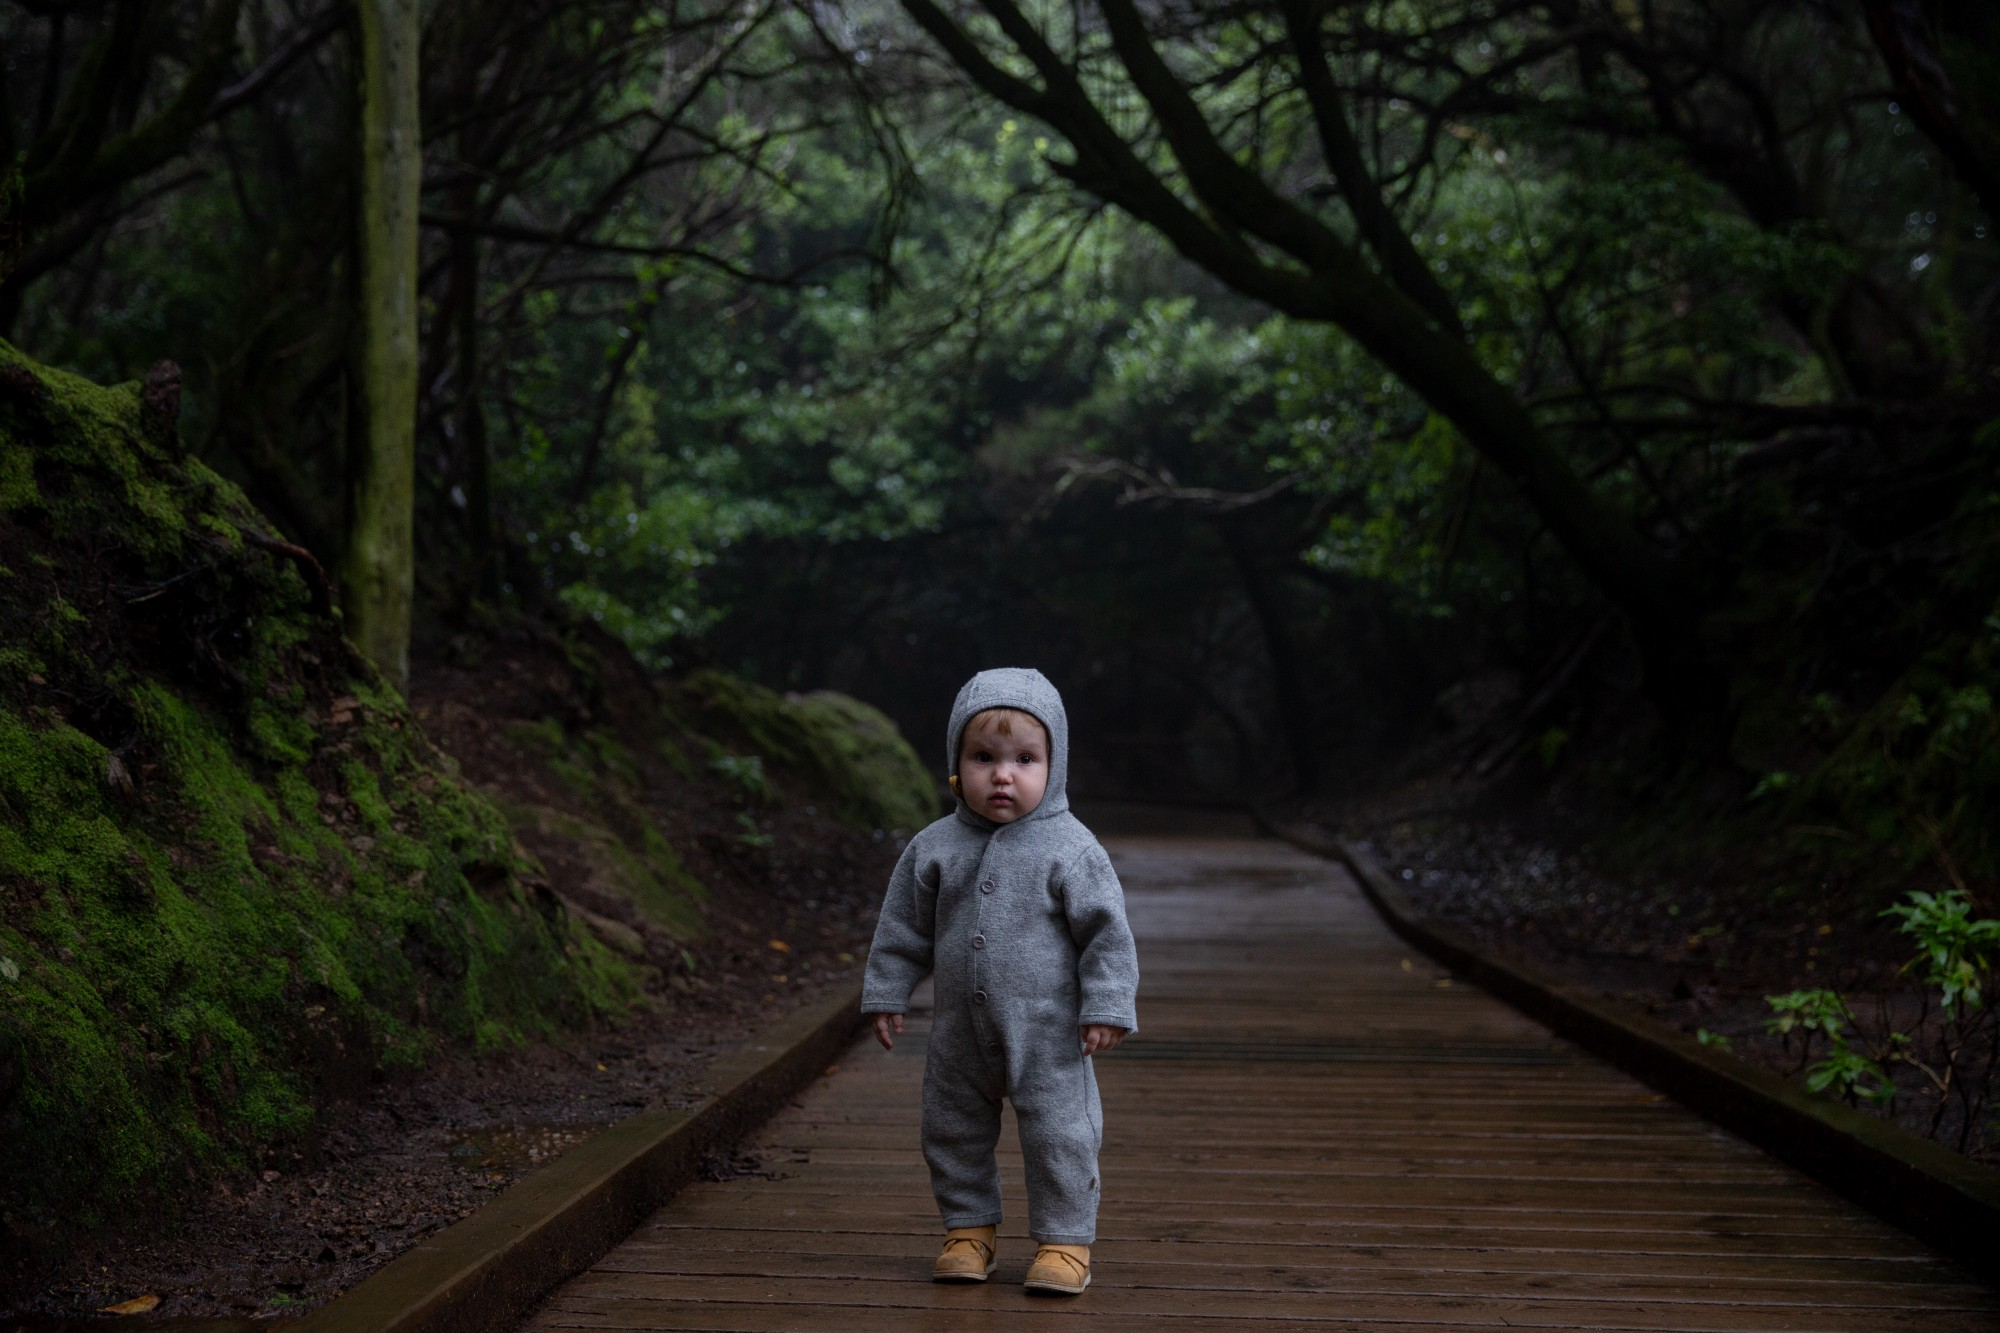 A scared-looking Infant toddler in a grey hooded onesie standing on a wood board path in the middle of a lush green forest.